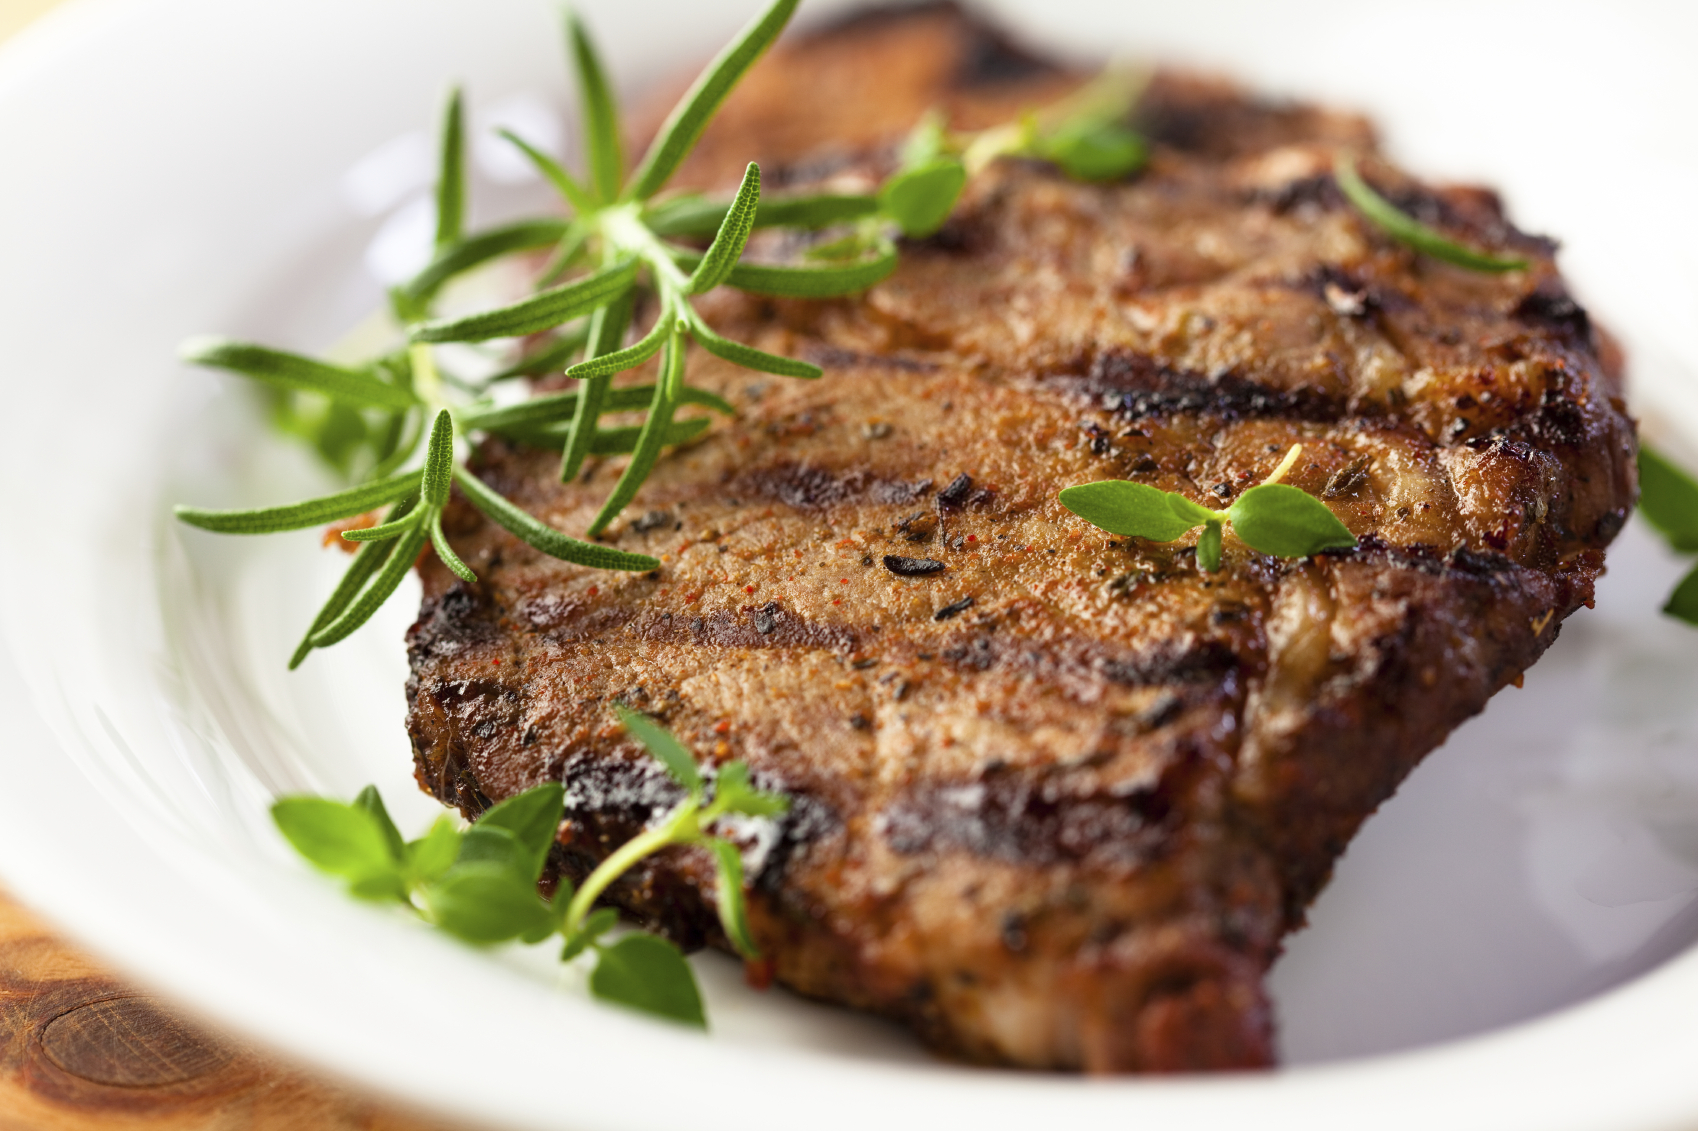 Pork chop with rosemary and mustard